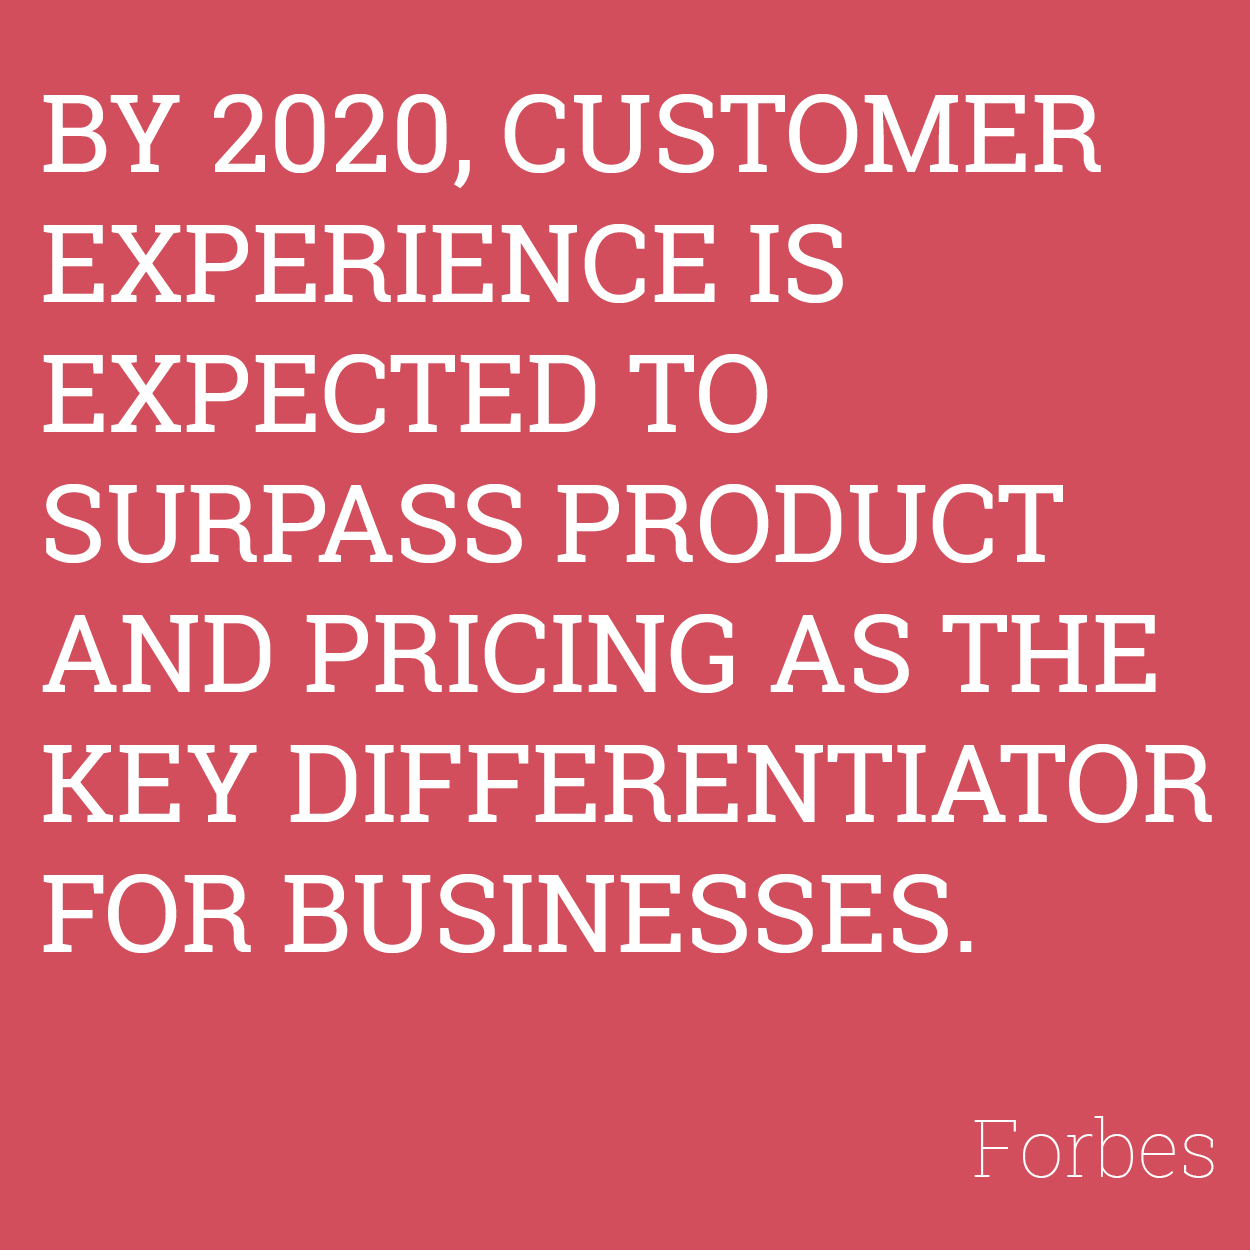 Forbes CX quote.jpg